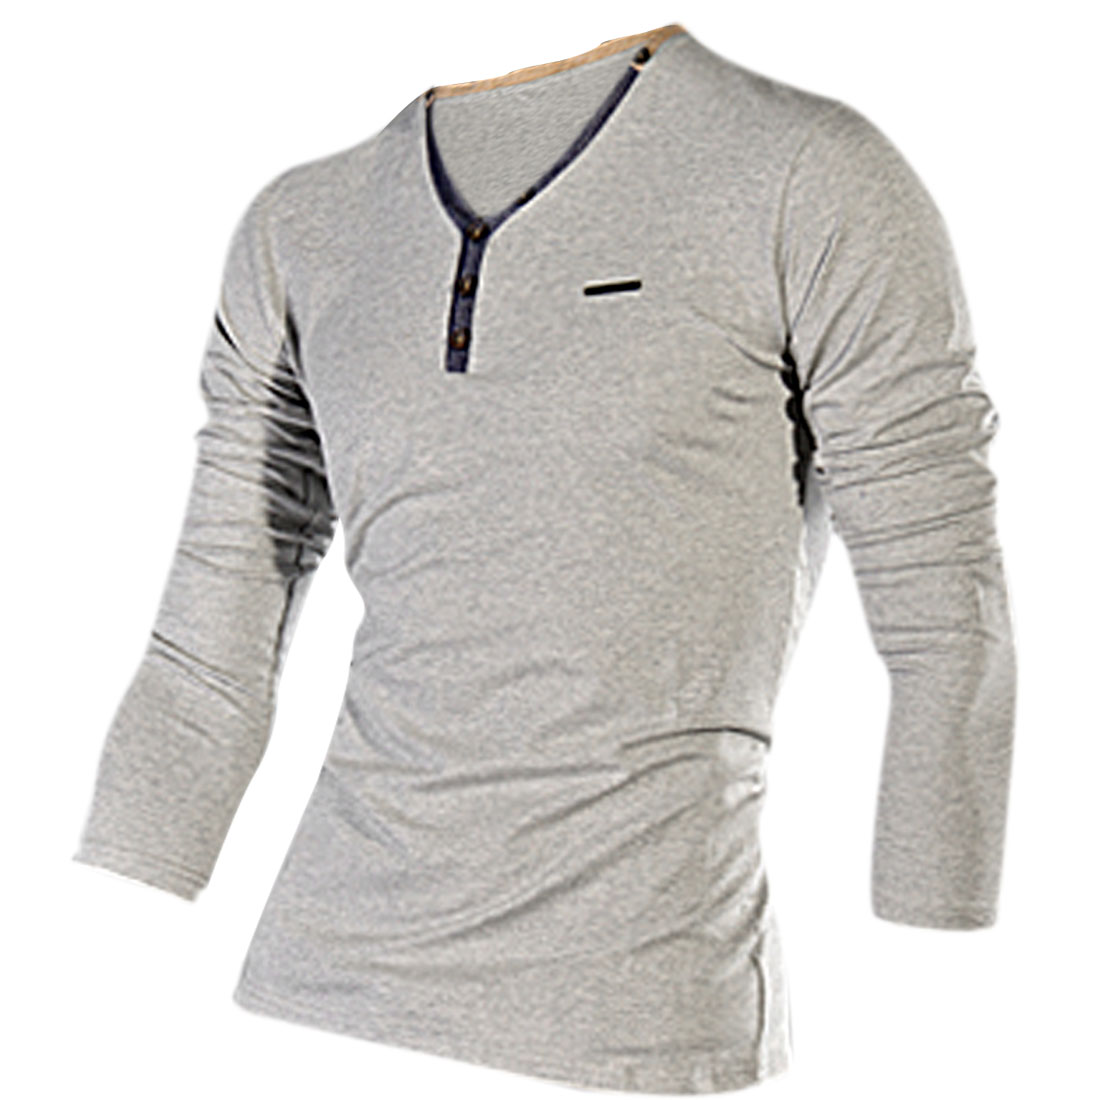 Man Heather Gray Color Spliced Detail V-Neck Long Sleeve Top Shirt S